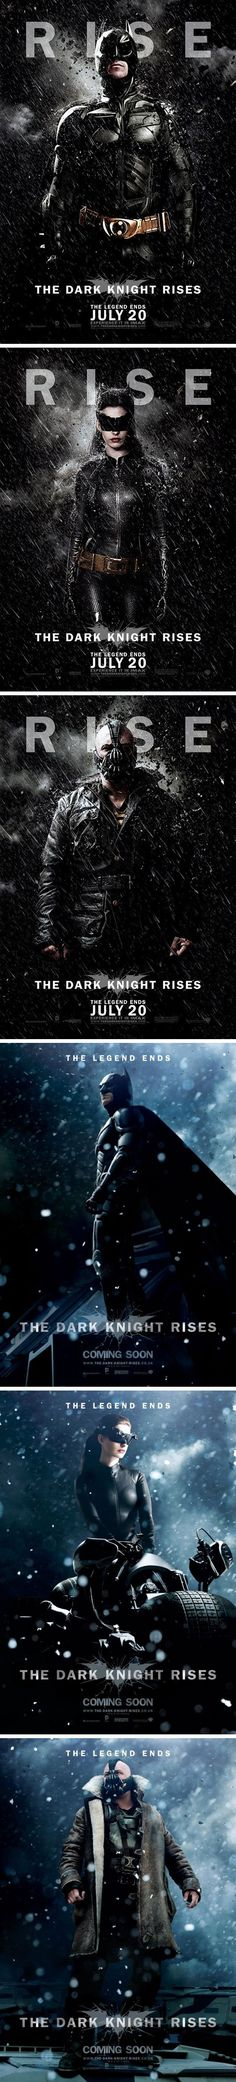 2012.5 The Dark Knight Rises Character Poster